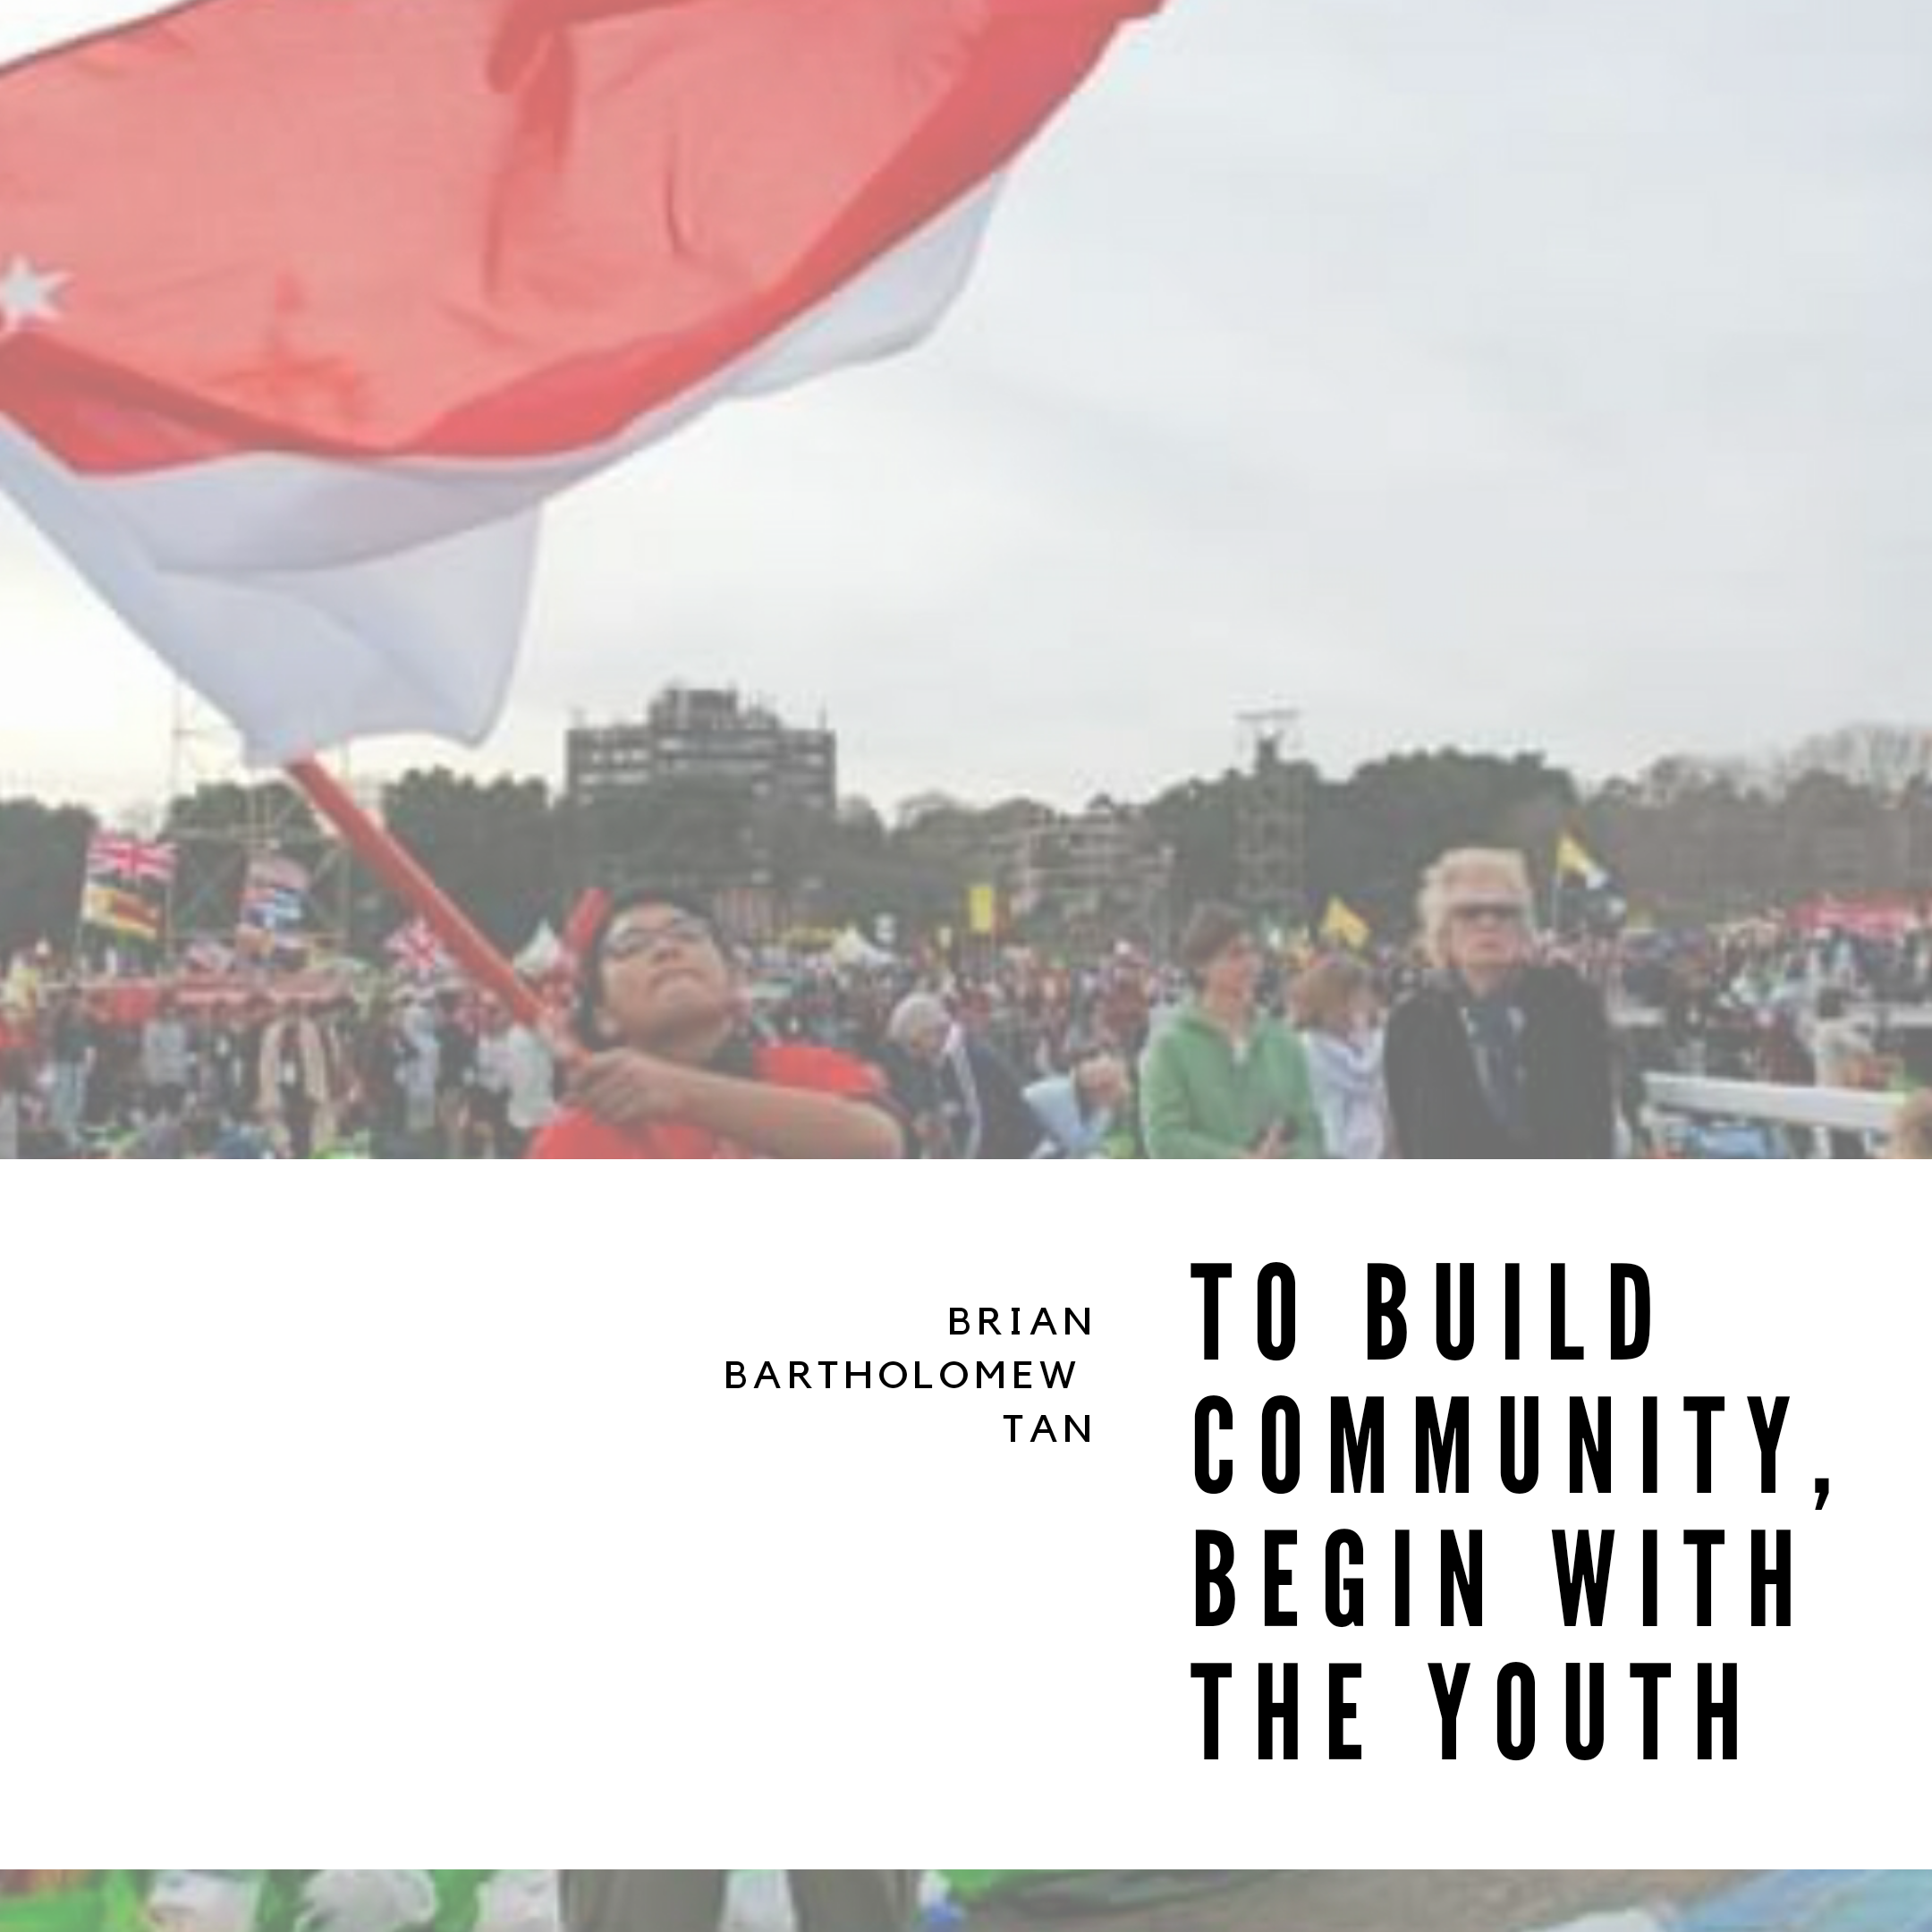 To Build Community, Begin With the Youth